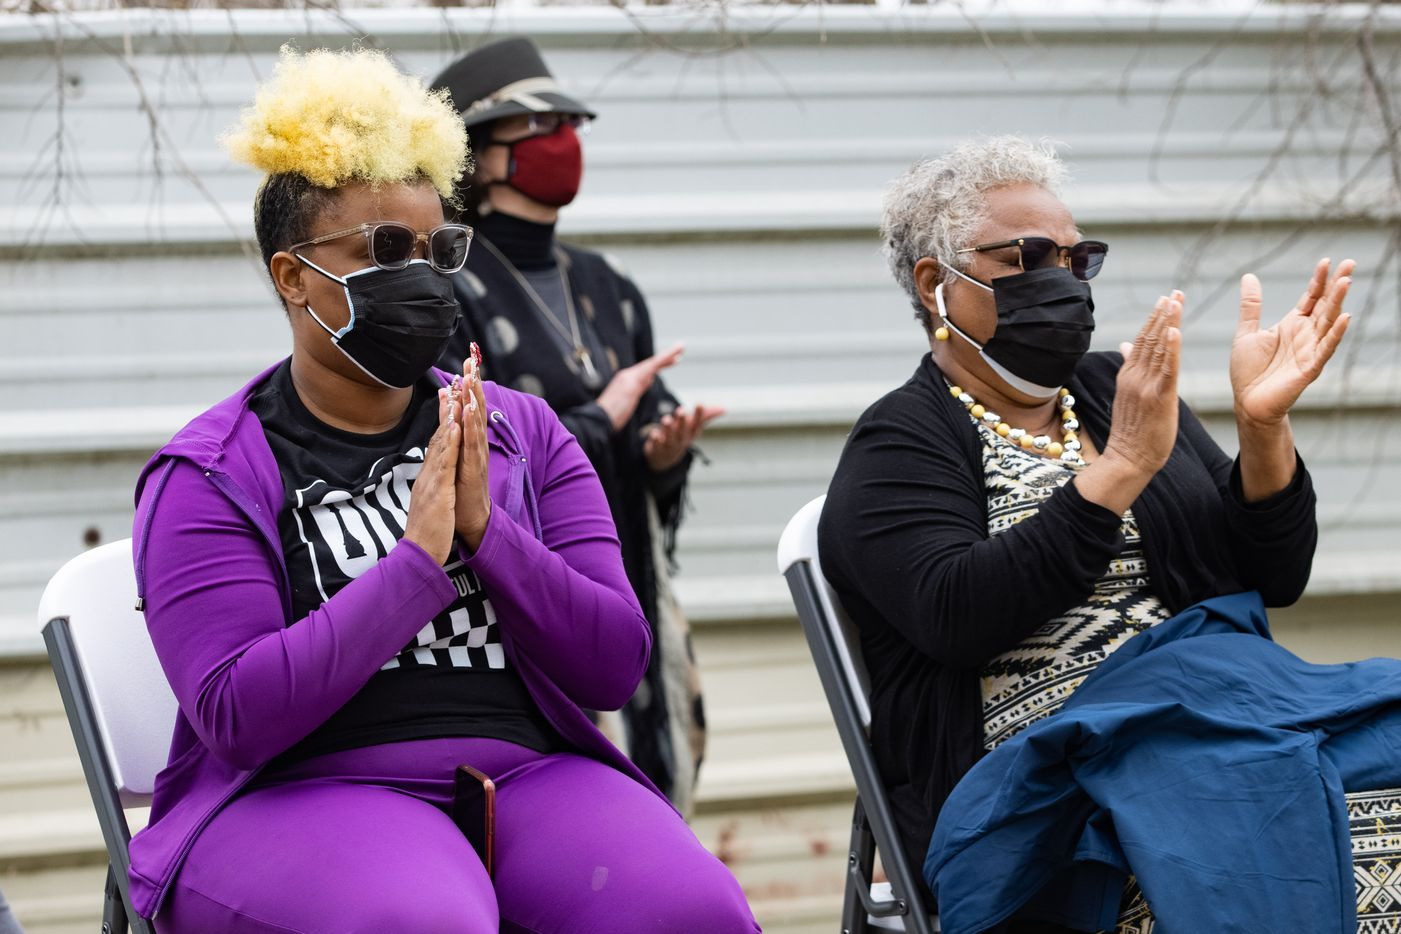 Marsha Jackson (right) and daughter LaKeisha Jackson clap after Shaun Martin performed outside of Jackson's home in Dallas on Friday, Feb. 26, 2021. Quincy Roberts, the contractor who moved Shingle Mountain, surprised Jackson with the concert. (Juan Figueroa/ The Dallas Morning News)